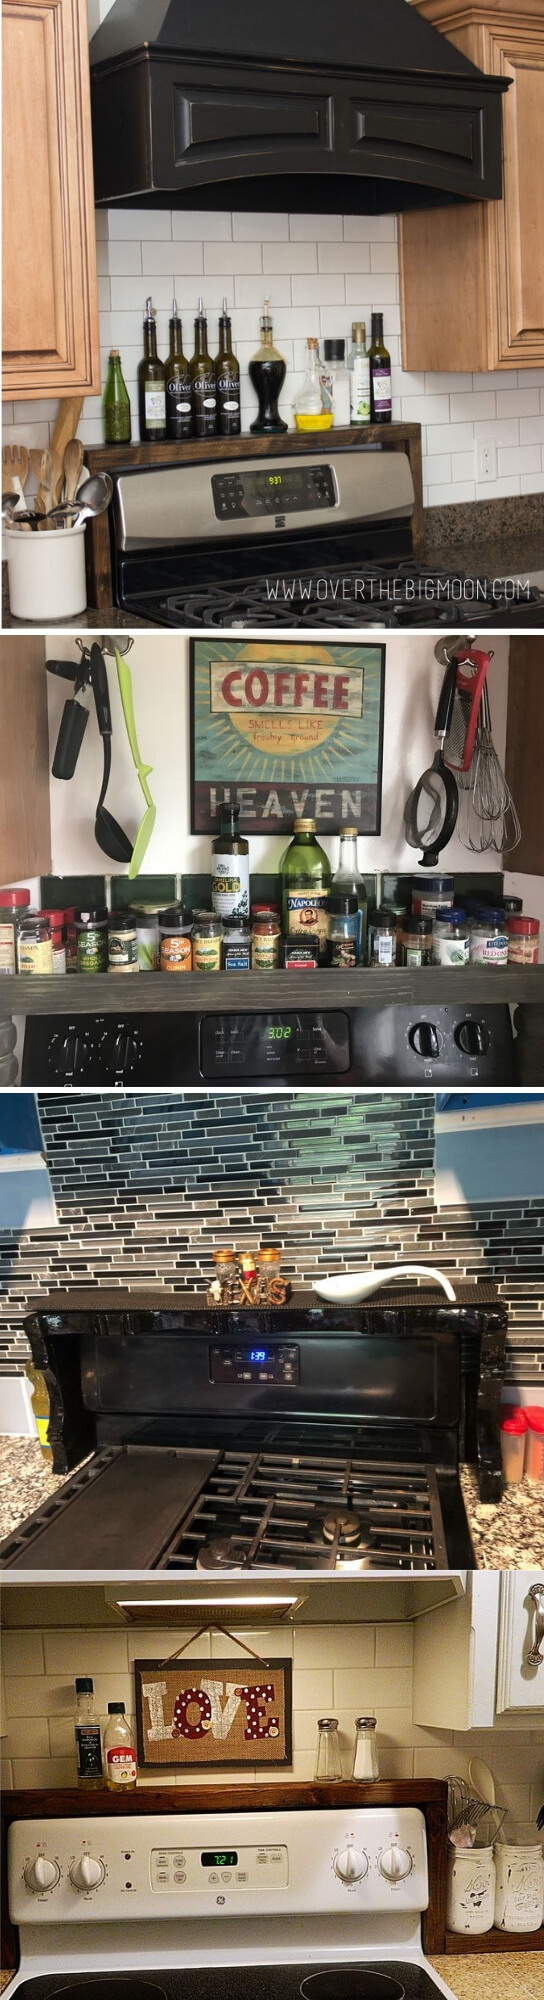 DIY Oil and Vinegar Shelf Over The Stove